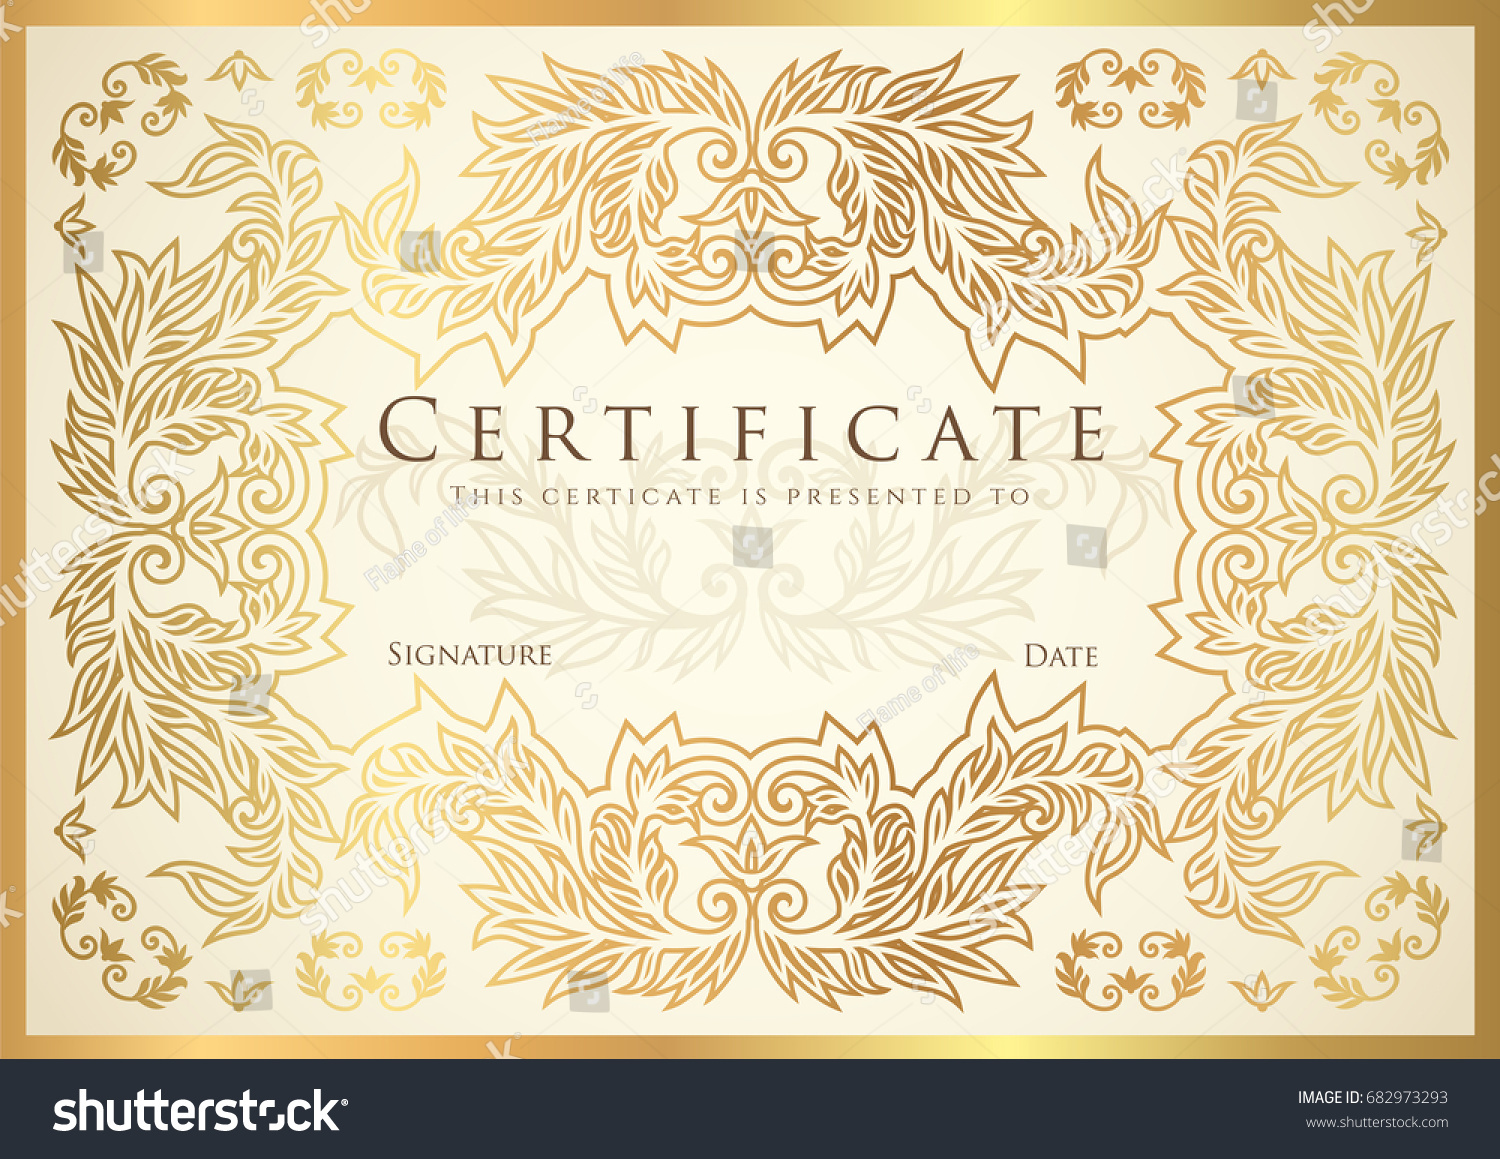 Certificate diploma completion golden design template stock vector certificate diploma of completion golden design template white background with floral yadclub Gallery